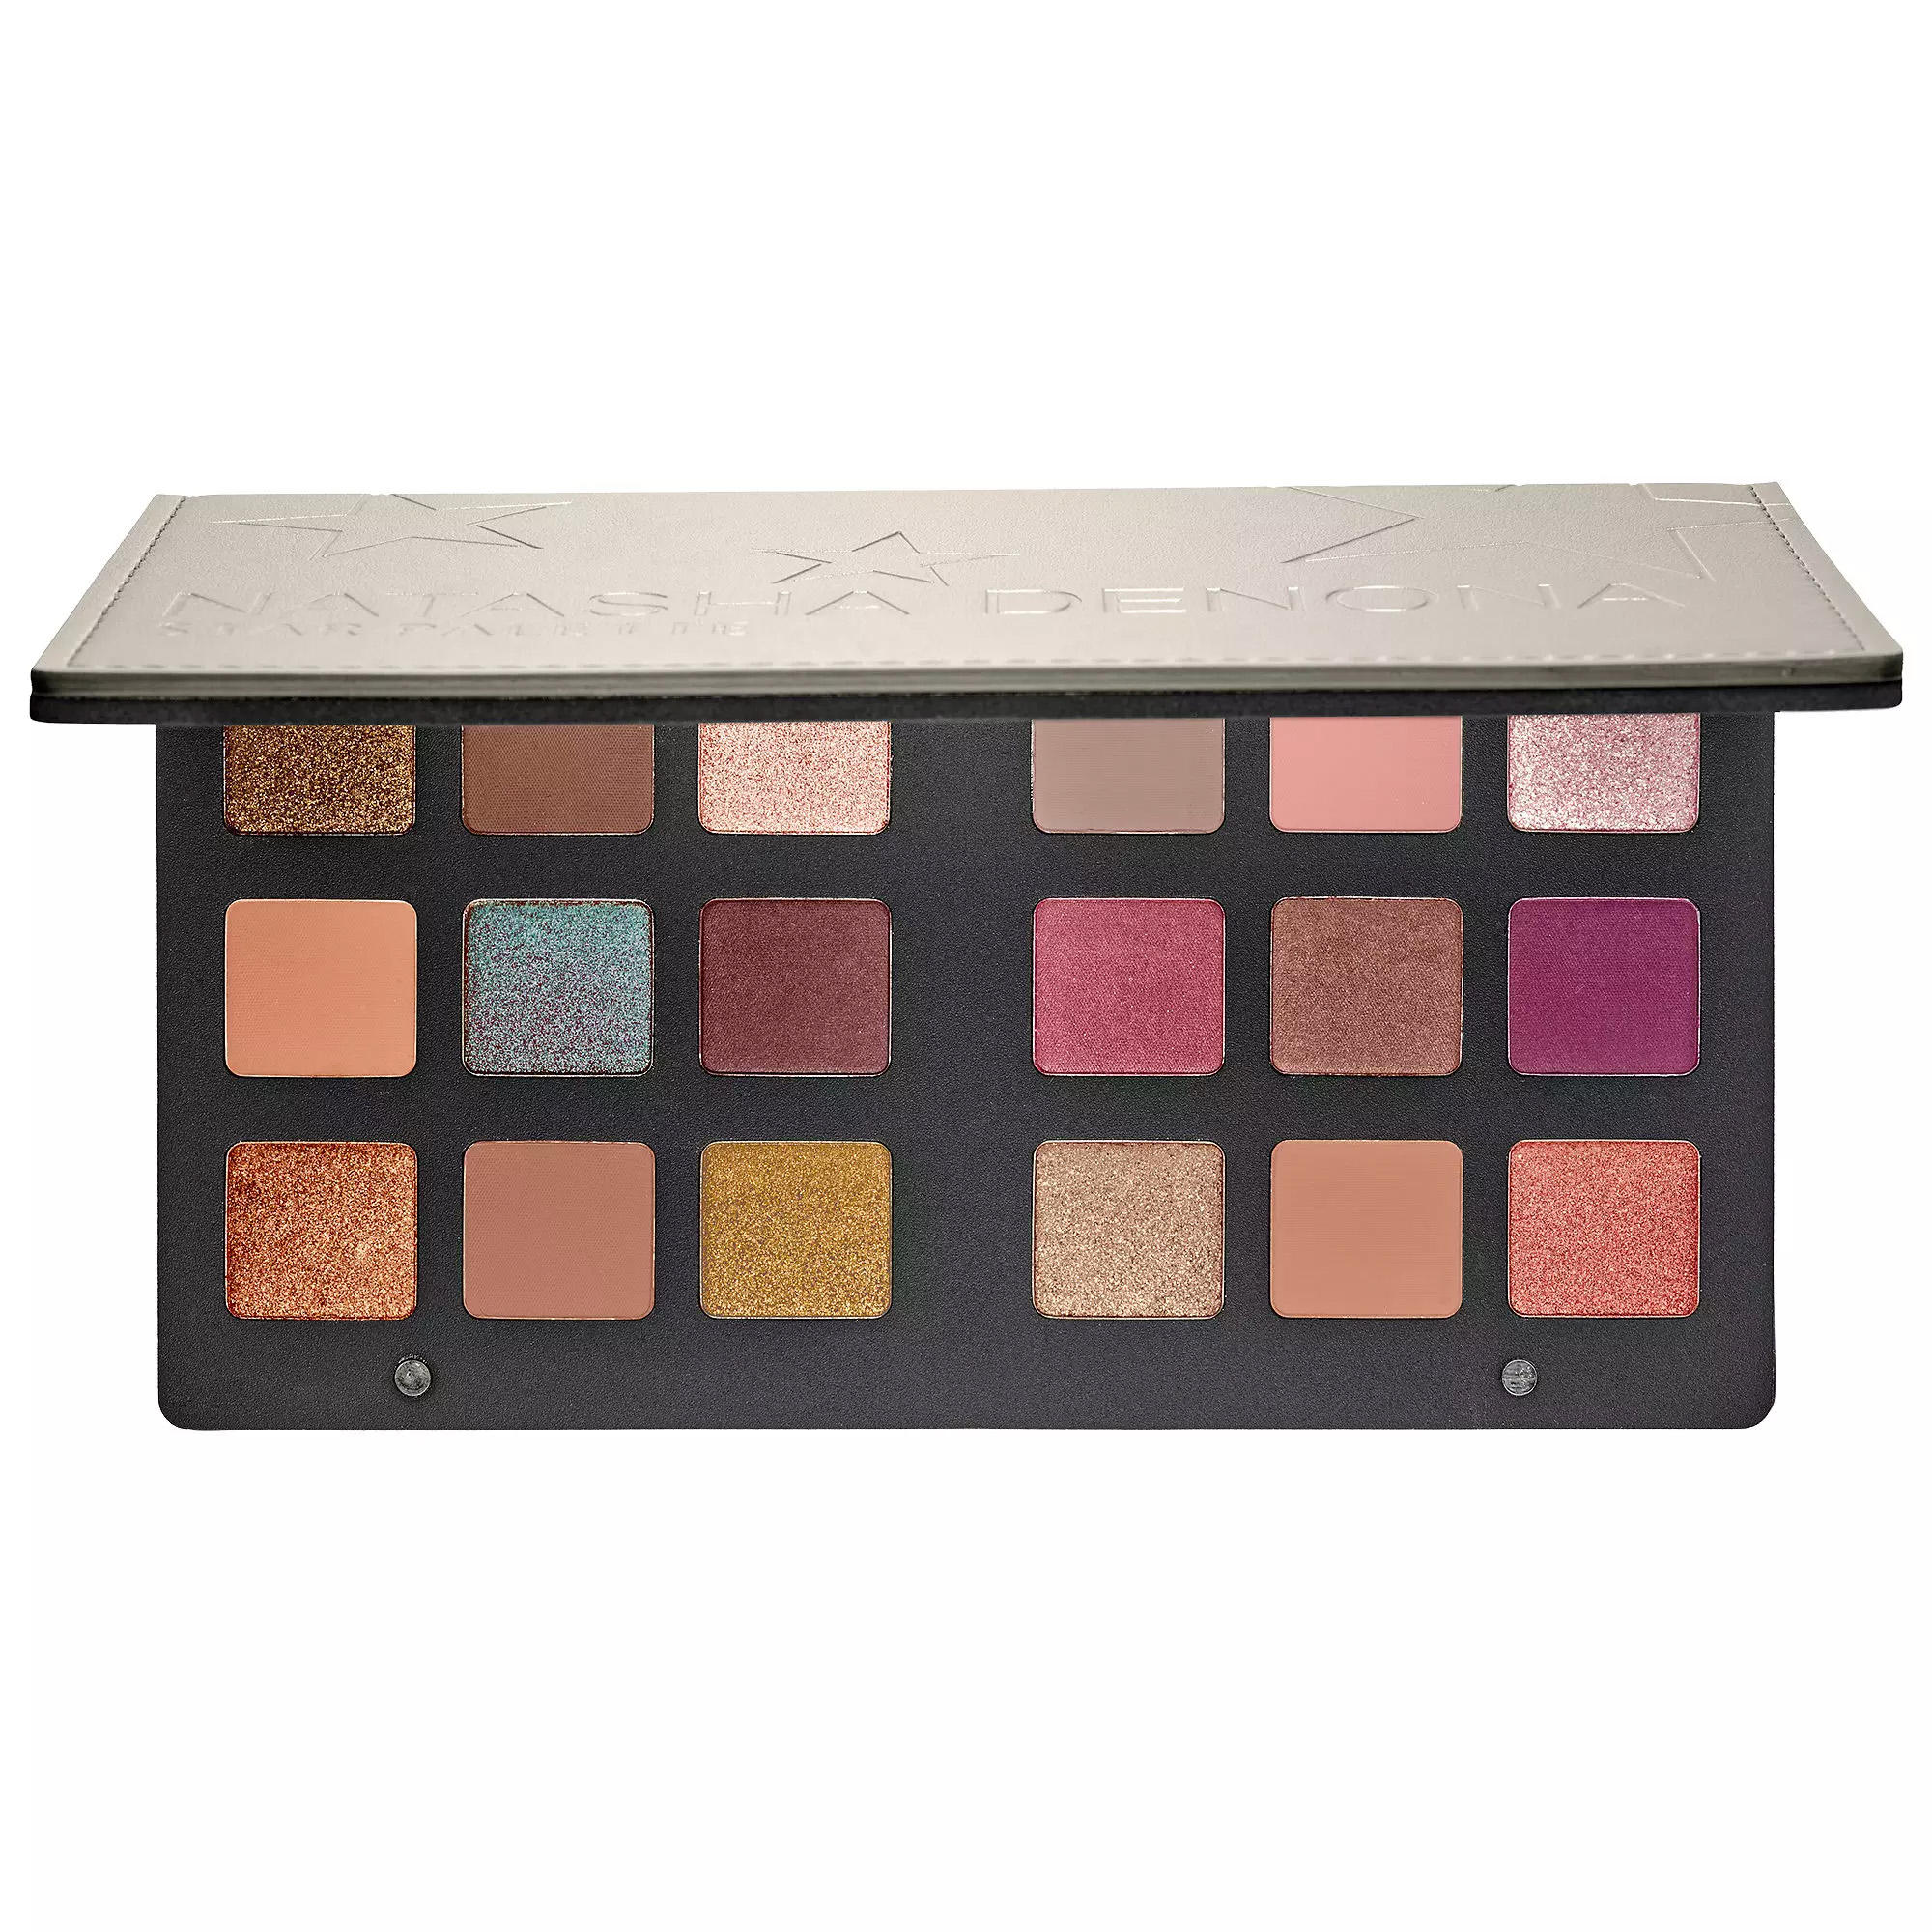 Natasha Denona Star Eyeshadow Palette * missing top right color *